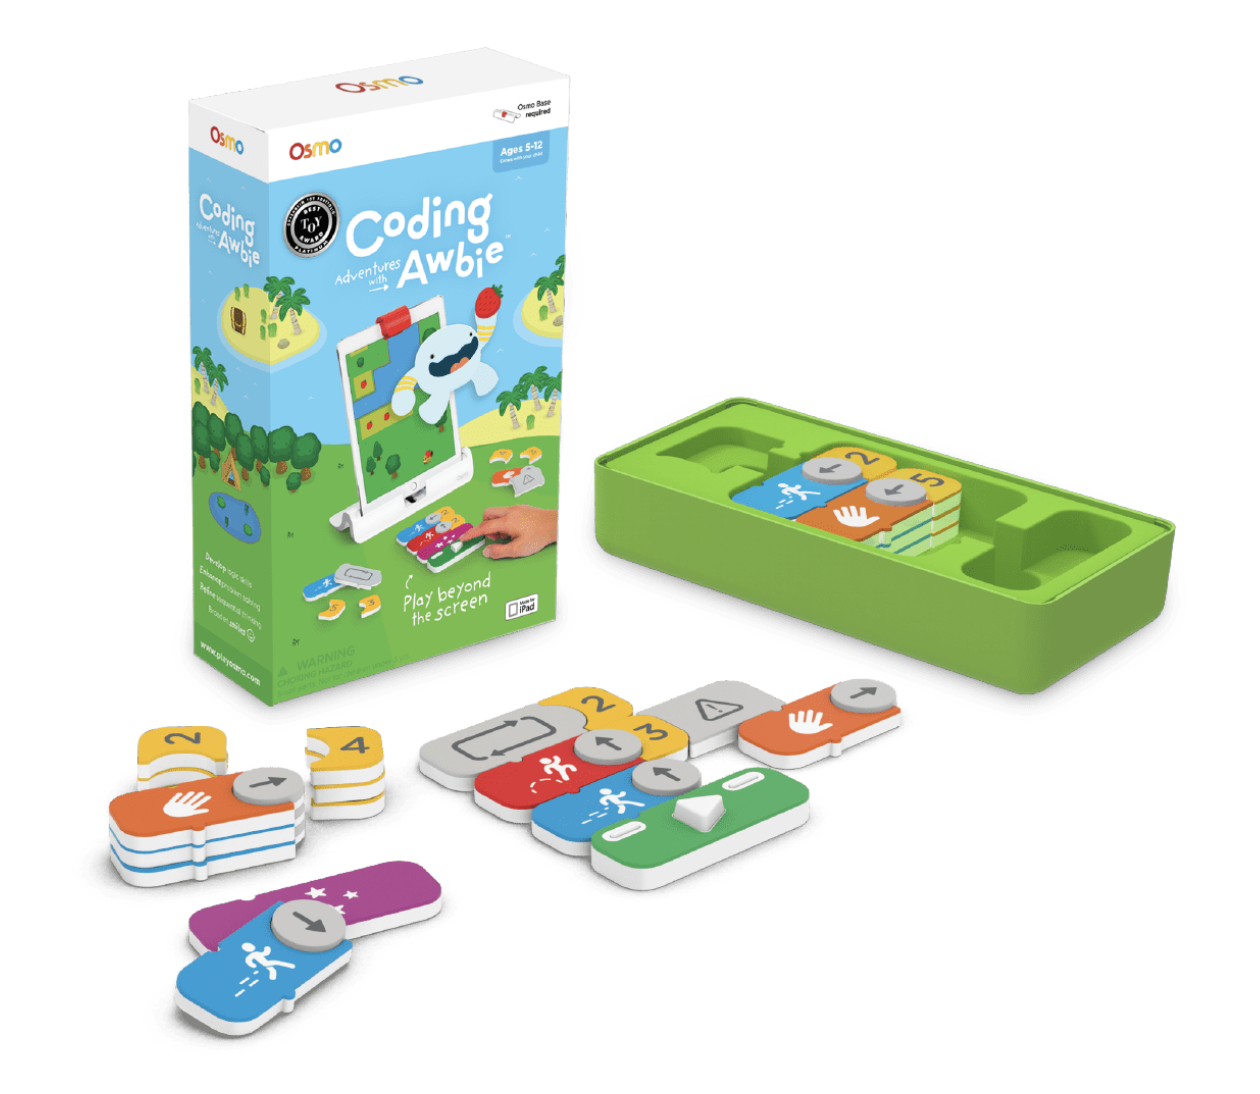 Top 8 Computer Coding for Kids Products - Student-Tutor